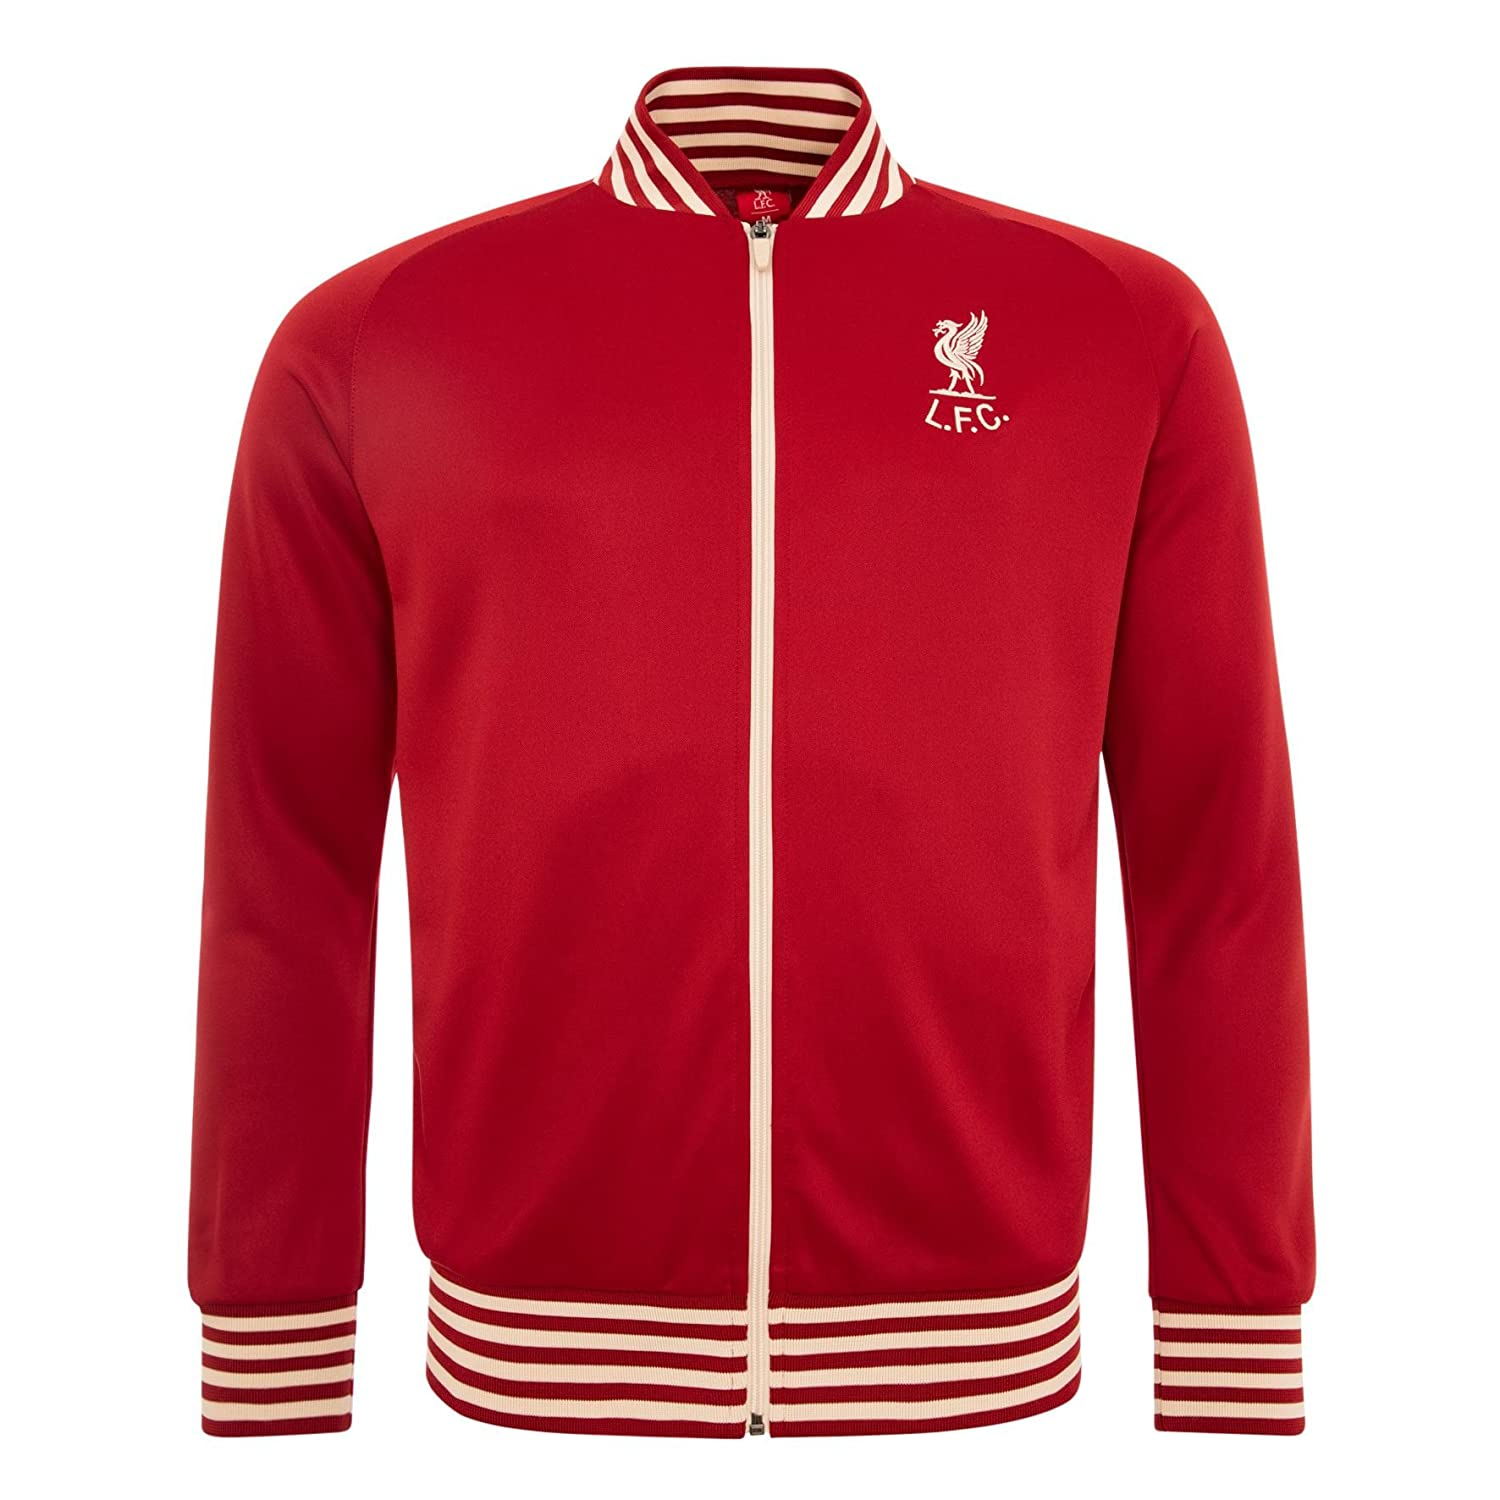 Liverpool FC Polyester Red Mens Long Sleeve Two Open Pockets Full Zip to The Front Shankly Track Jacket Available Sizes S,M,L,XL from LFC Official Store